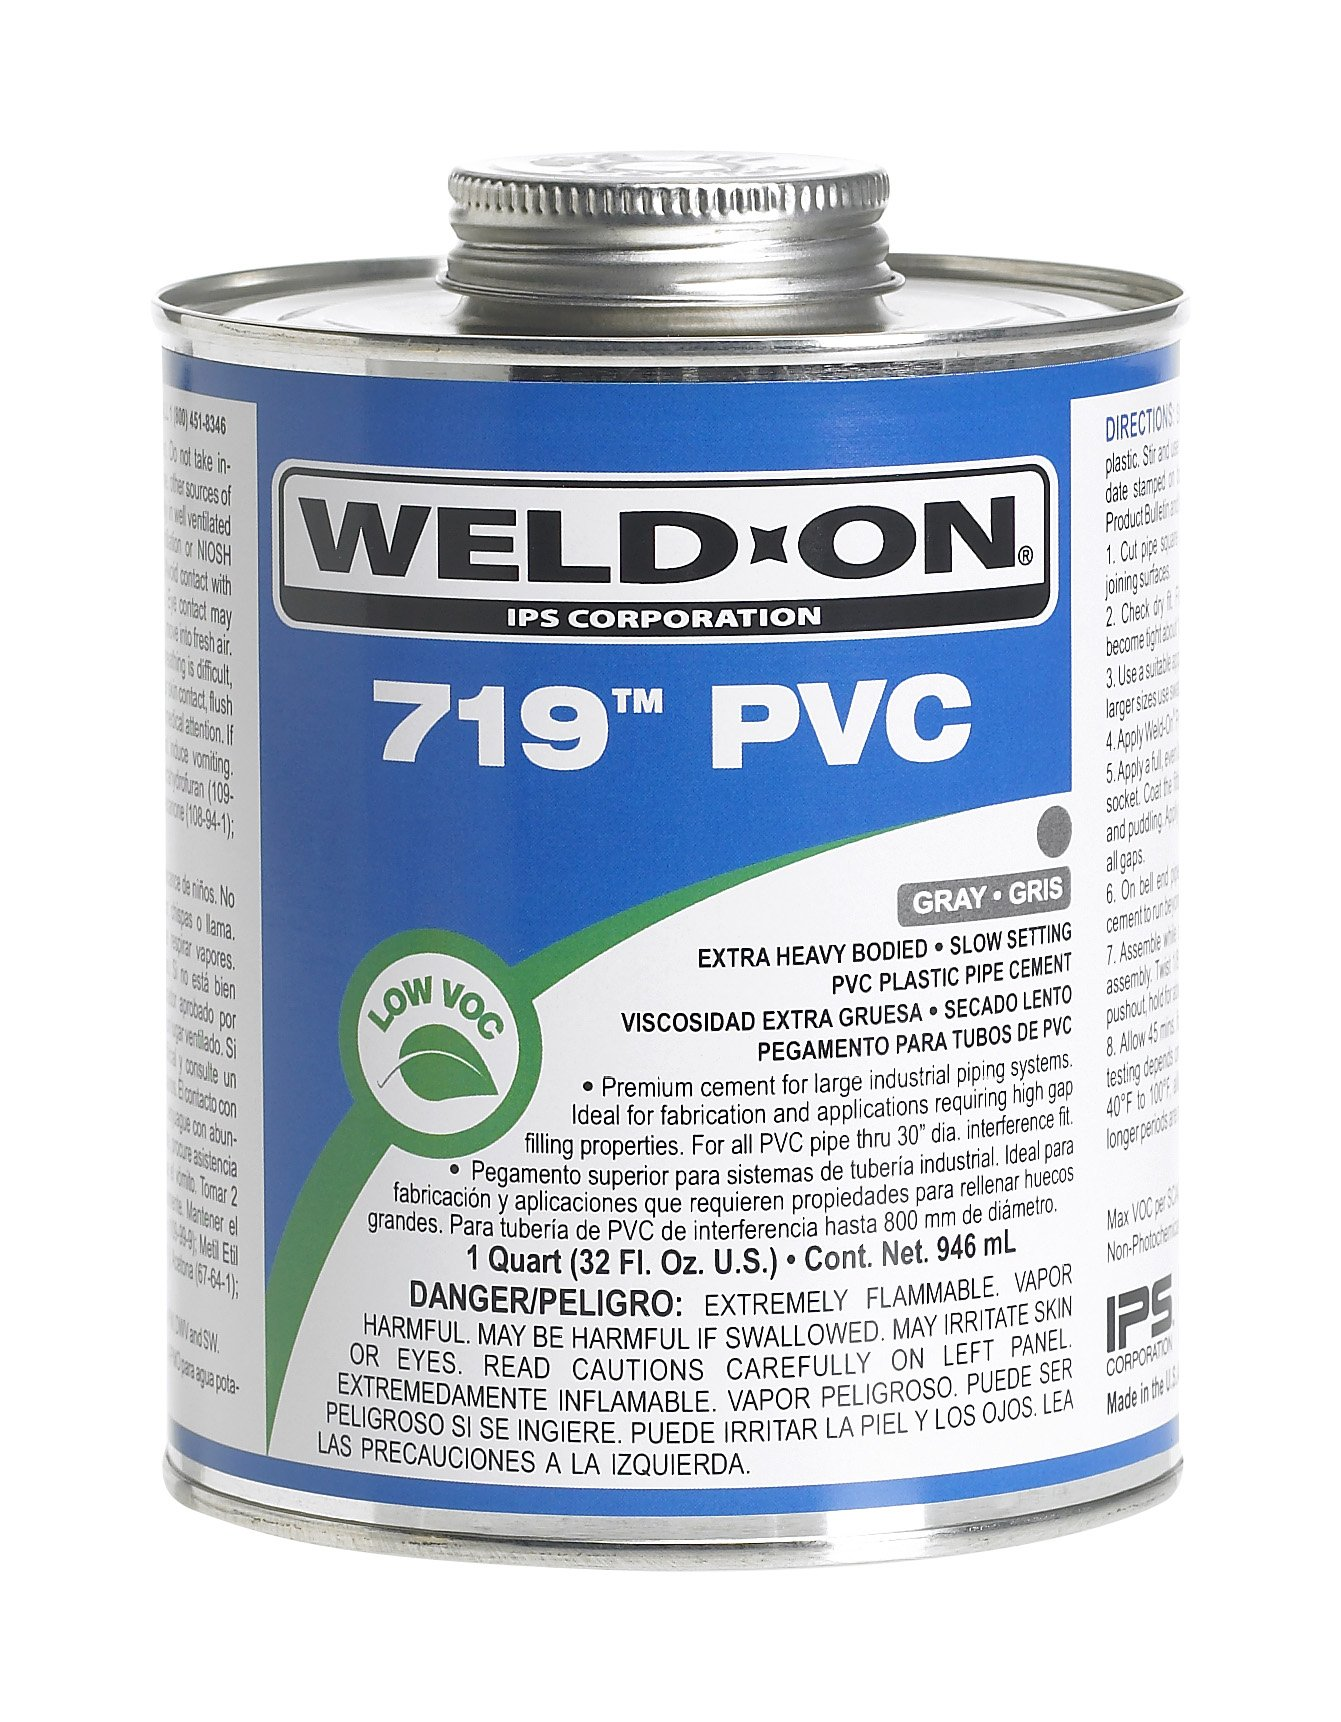 Weld-On 13078 Gray 719 Extra Heavy-Bodied PVC Professional Industrial-Grade Cement, Slow-Setting, Low-VOC, 1 gallon Wide-mouth Can